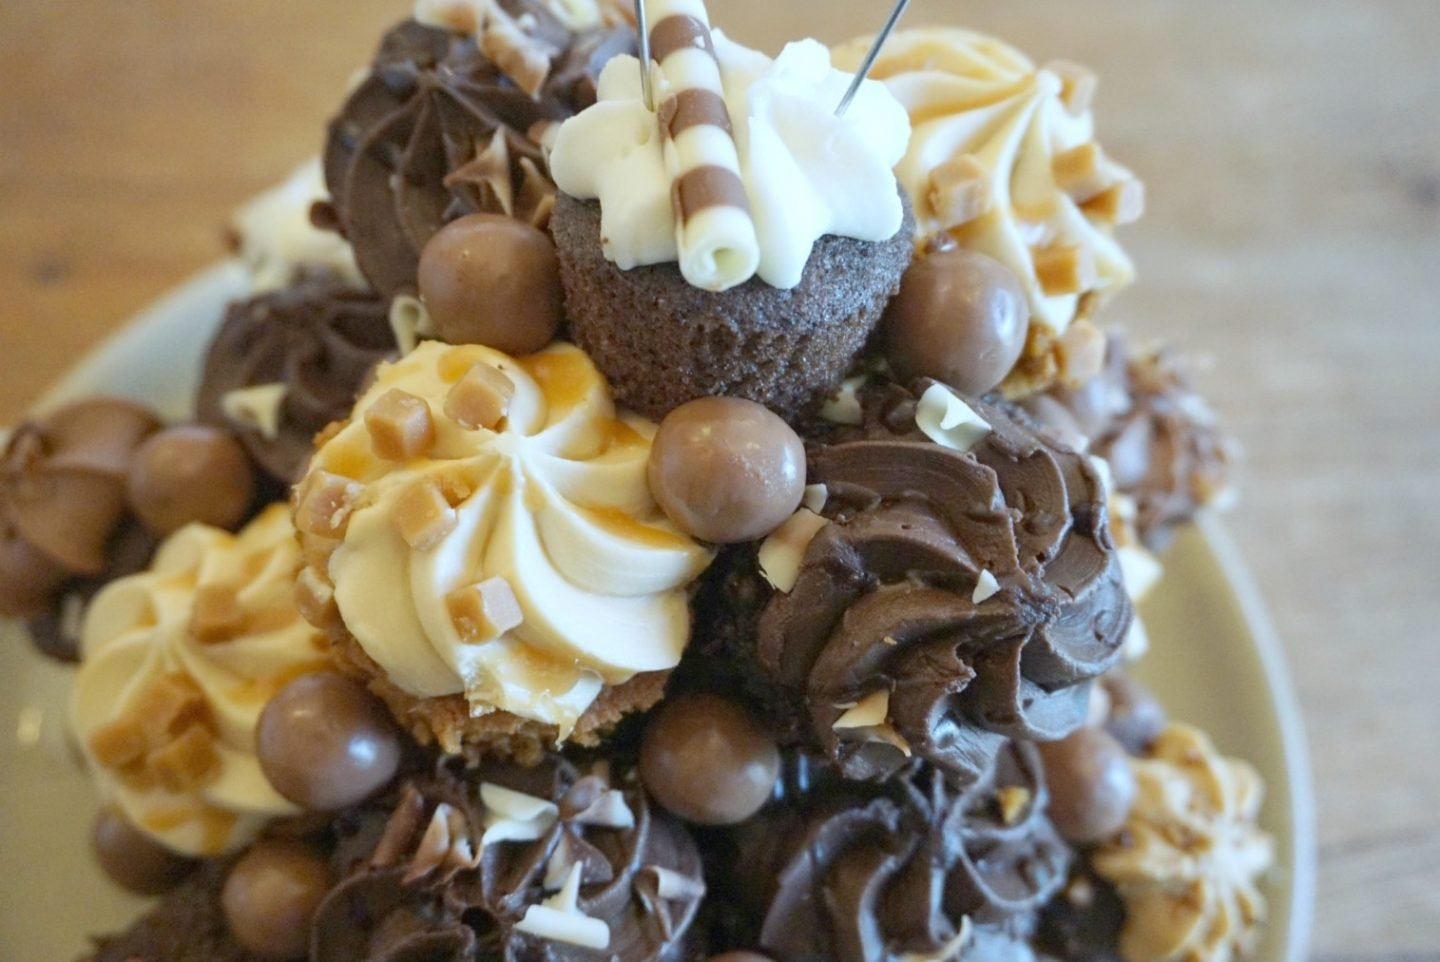 Chocolate Cake Made From Cup Cakes www.extraordinarychaos.com